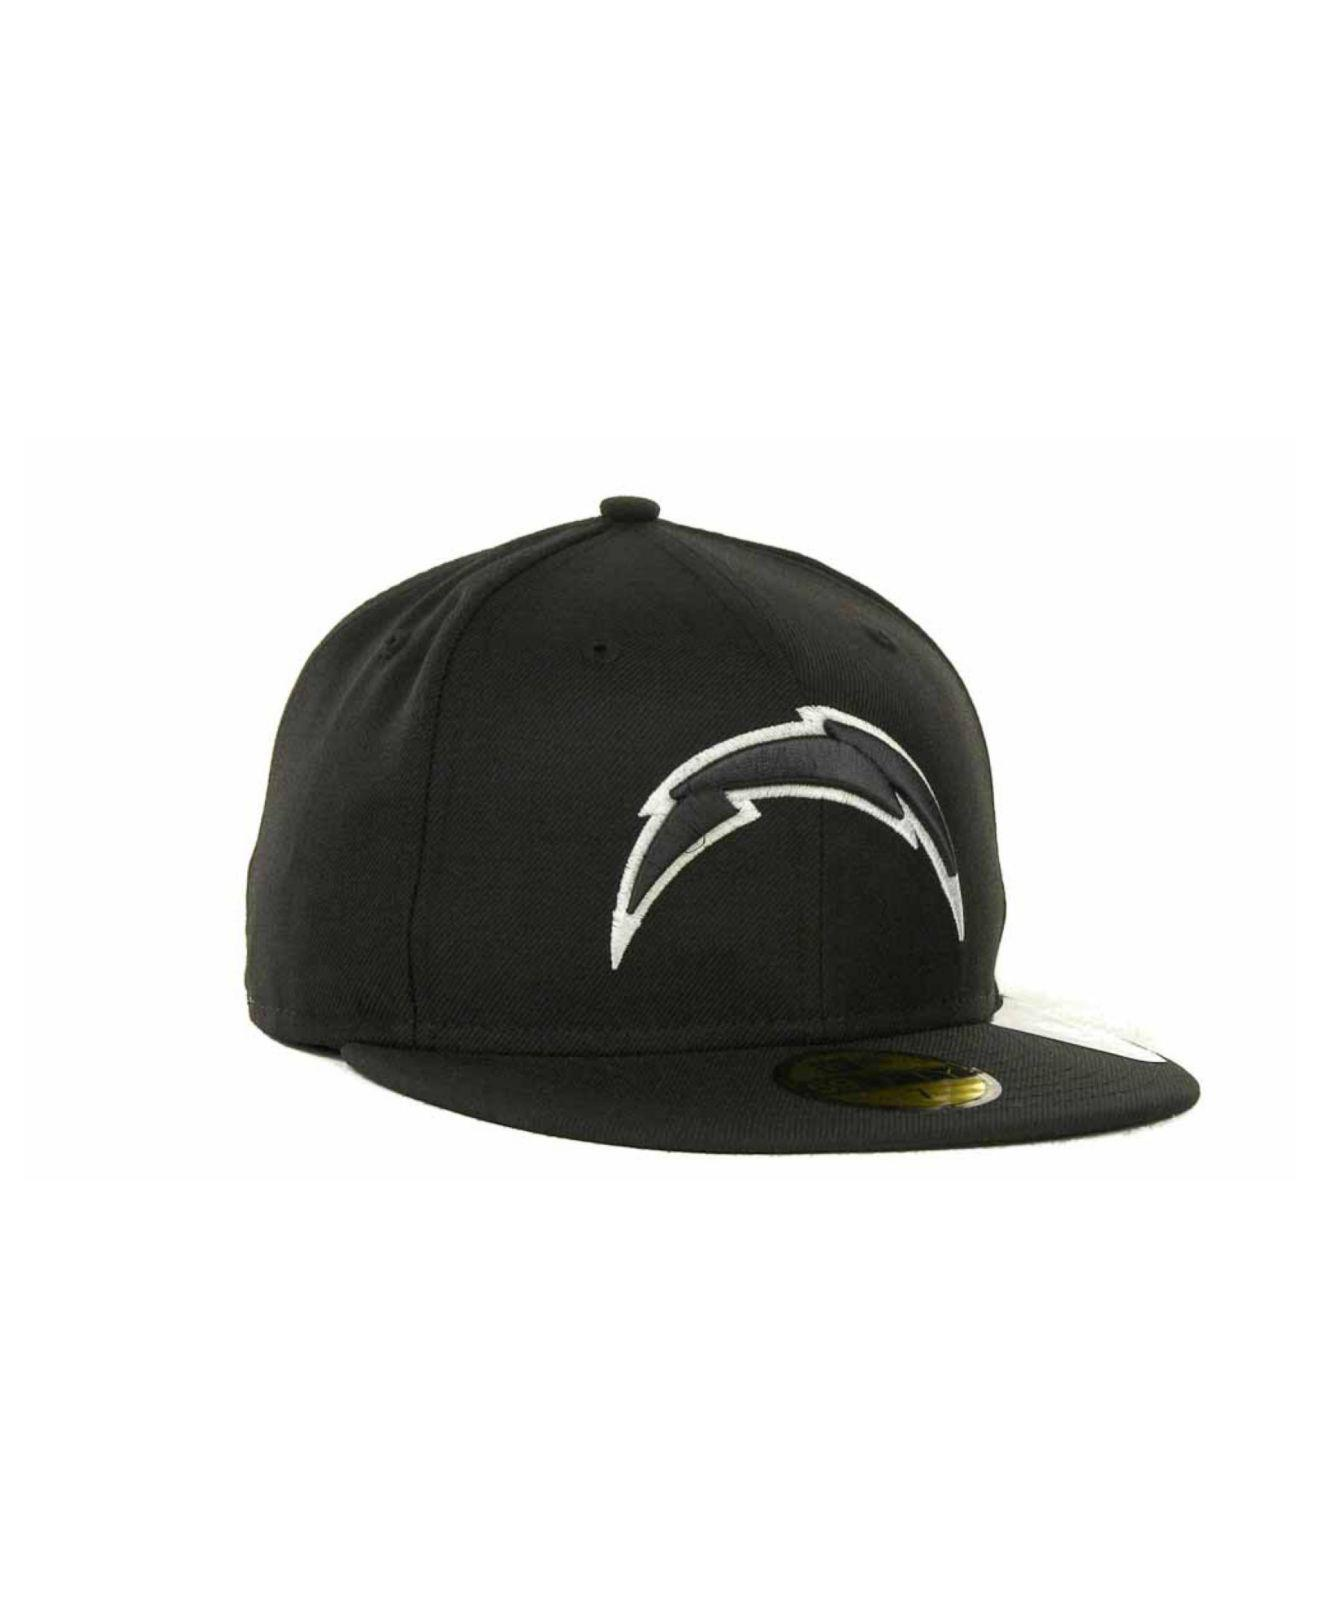 detailing f175a 8db2c ... Chargers 59fifty Cap for Men - Lyst. View fullscreen